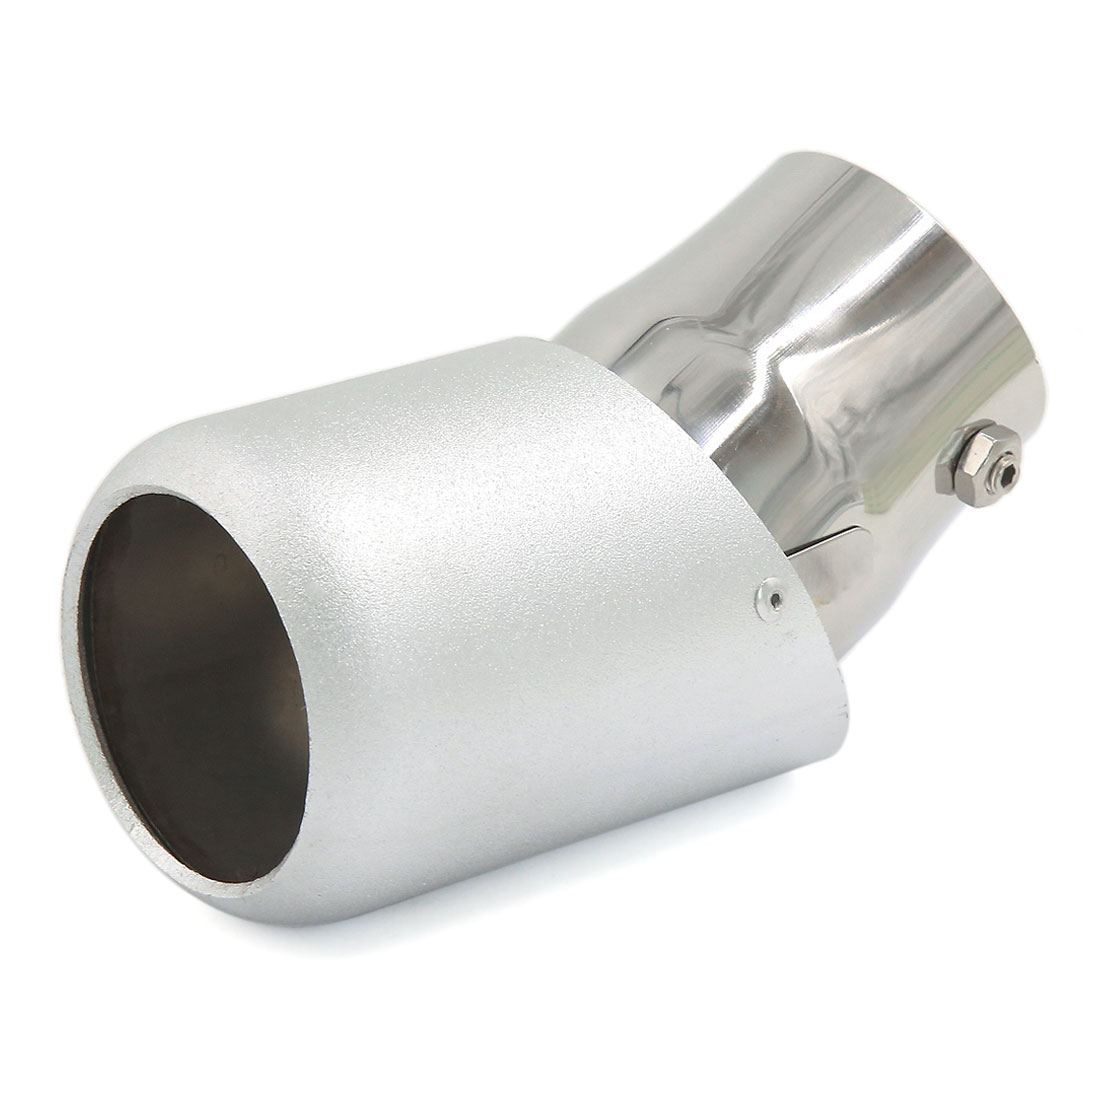 Universal Silver Tone Car Exhaust Tail Muffler Tip Pipe fit Diameter 2.6 Inch